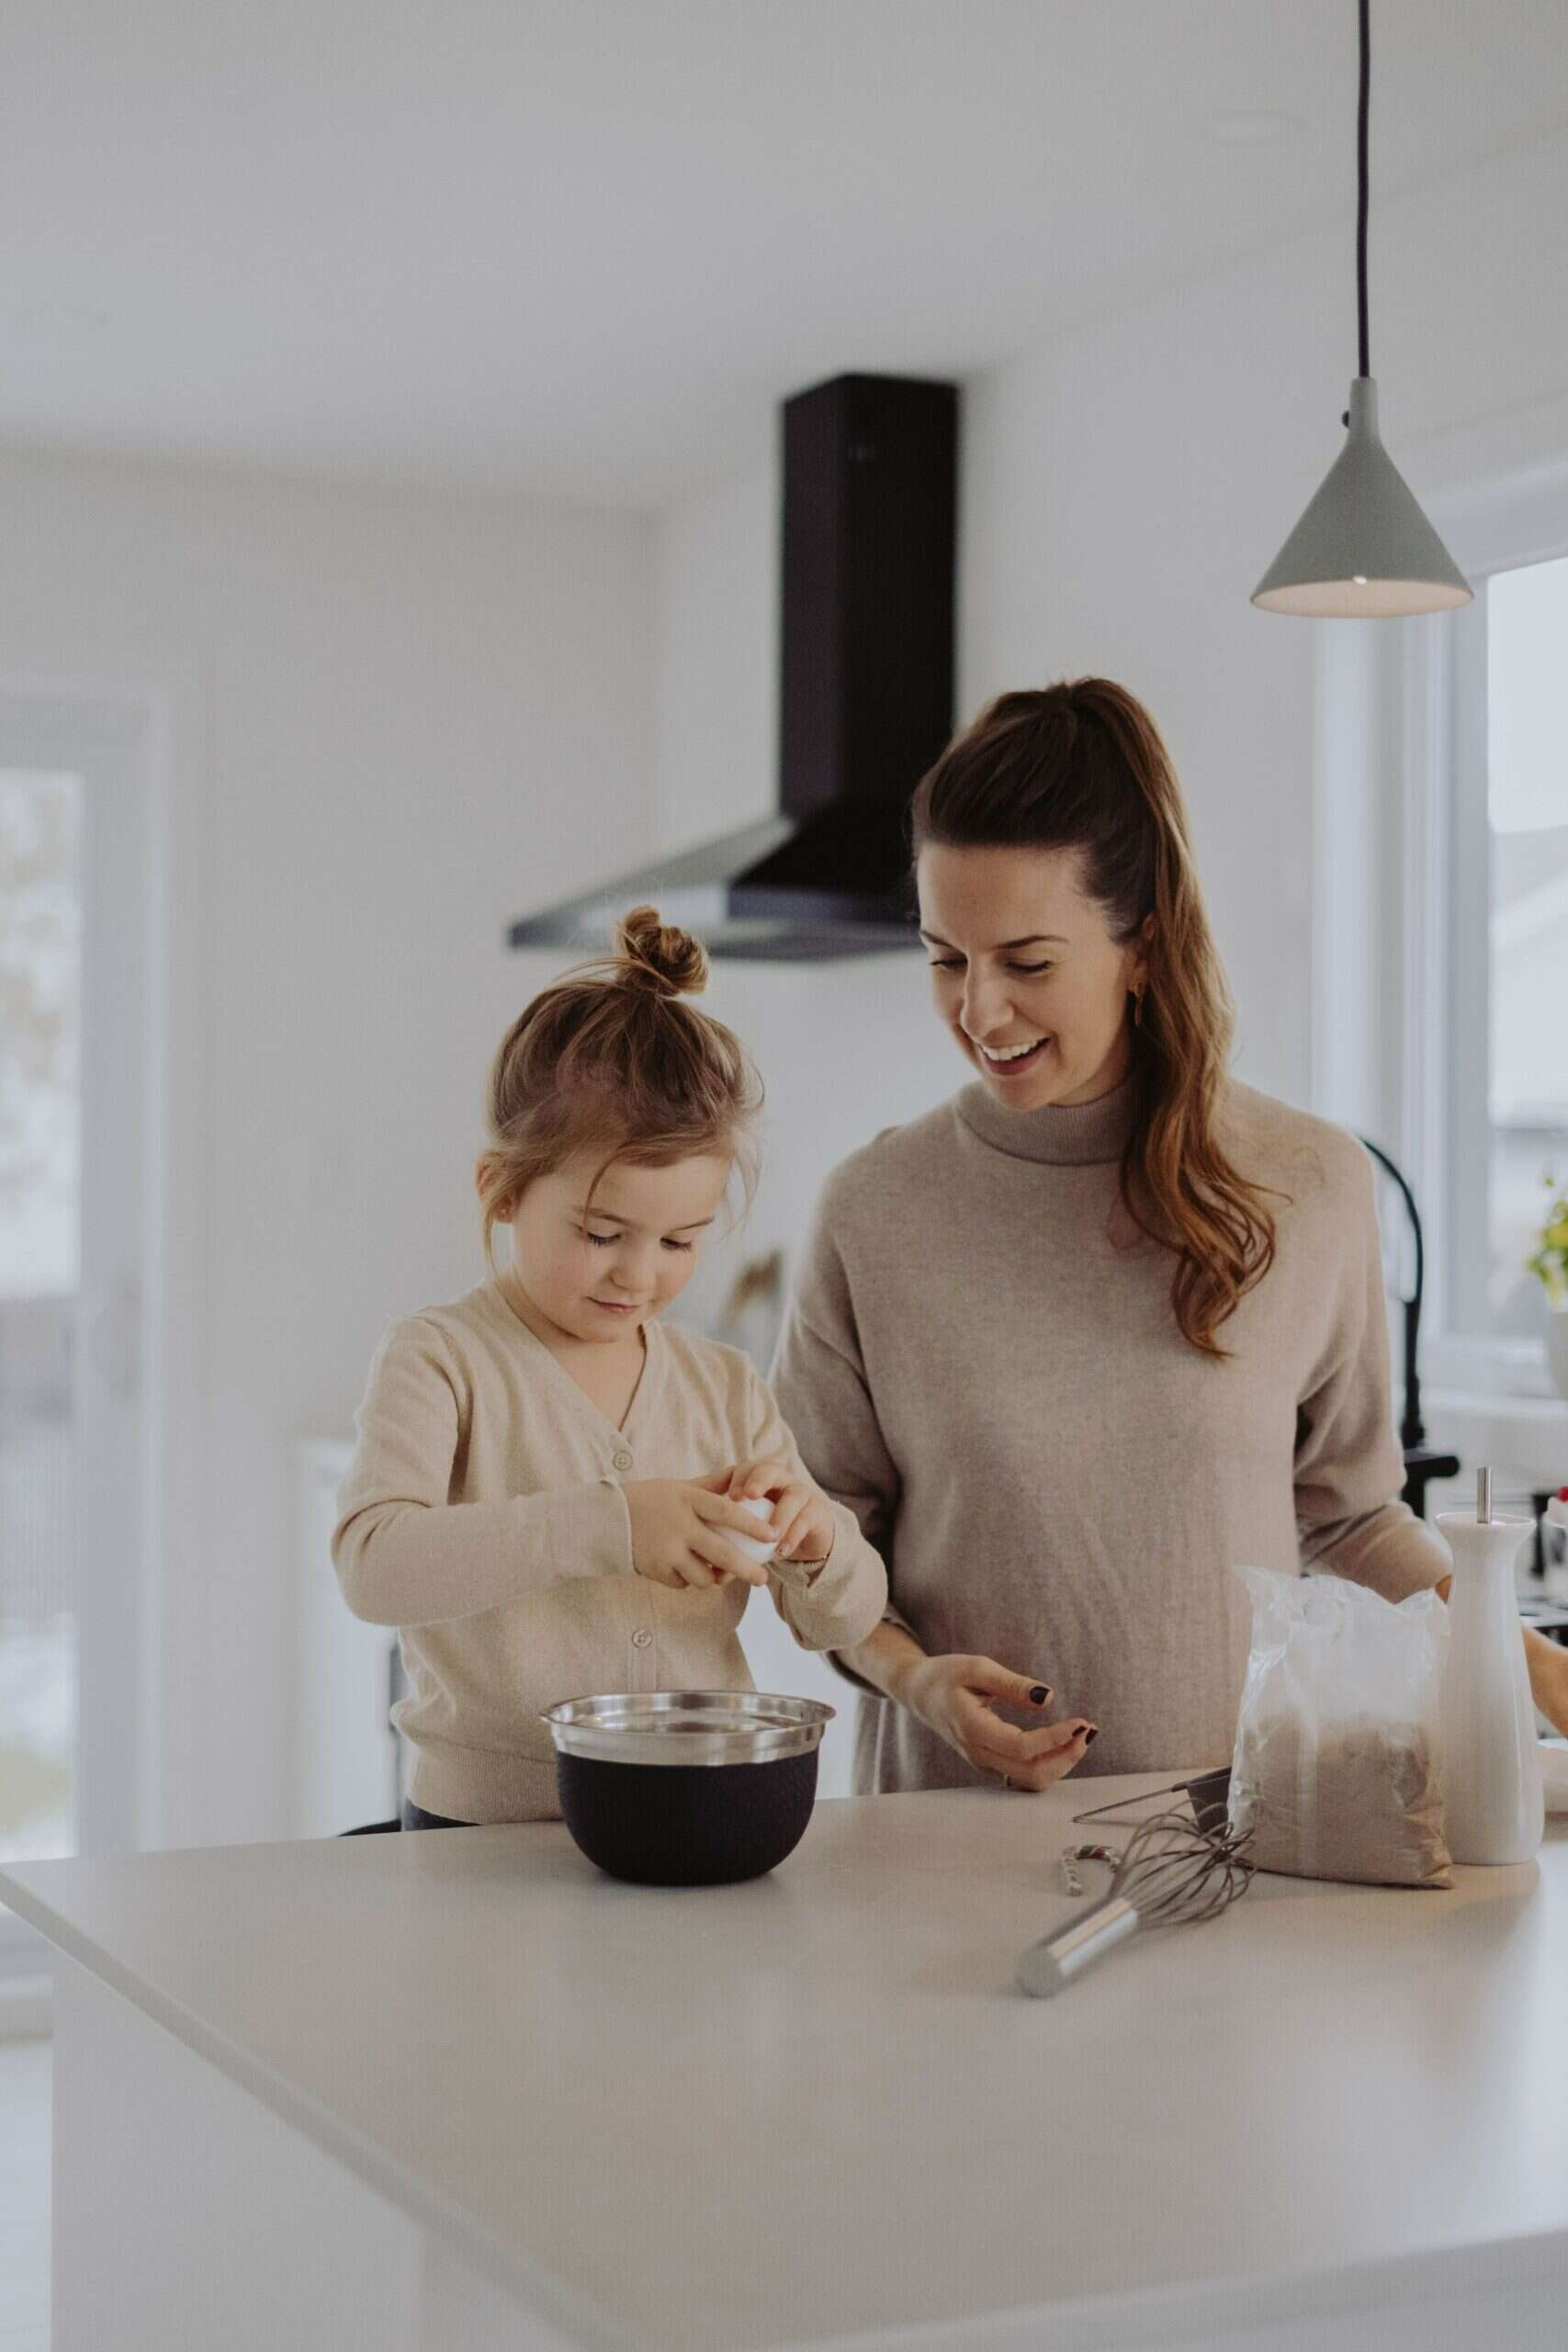 How do I get my child to eat better